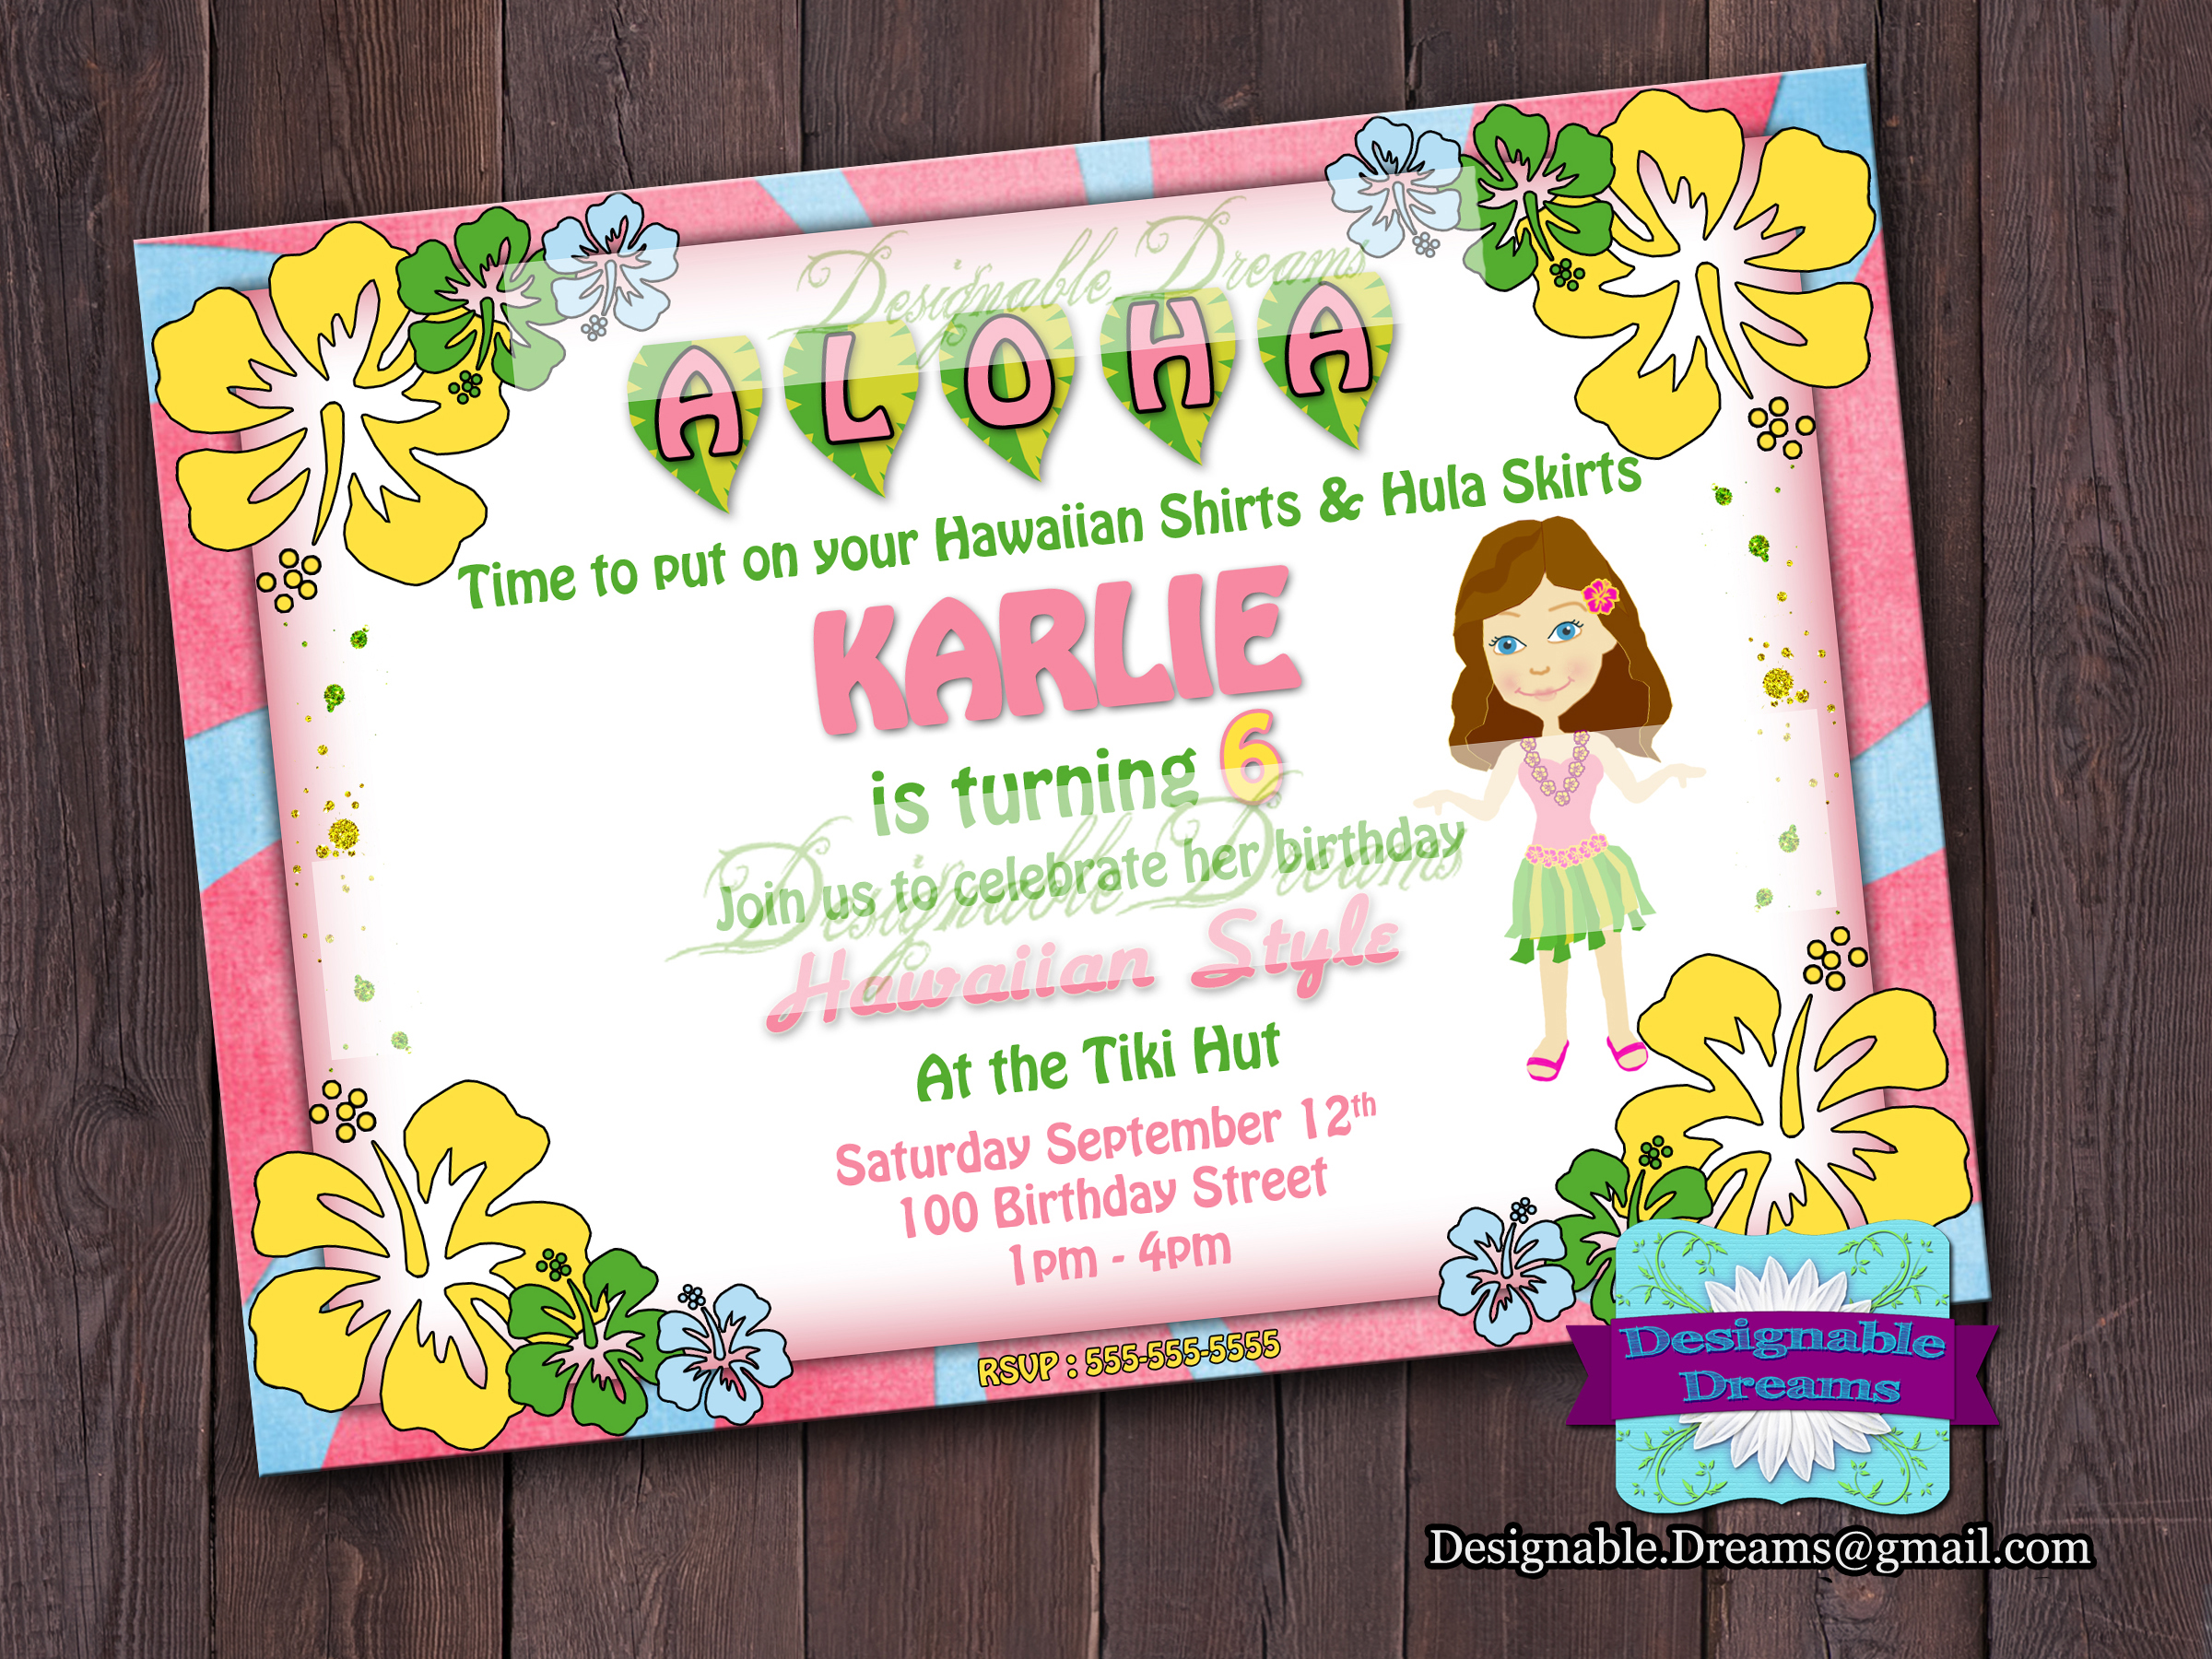 Hawaiian Luau Birthday Invitation on Luulla